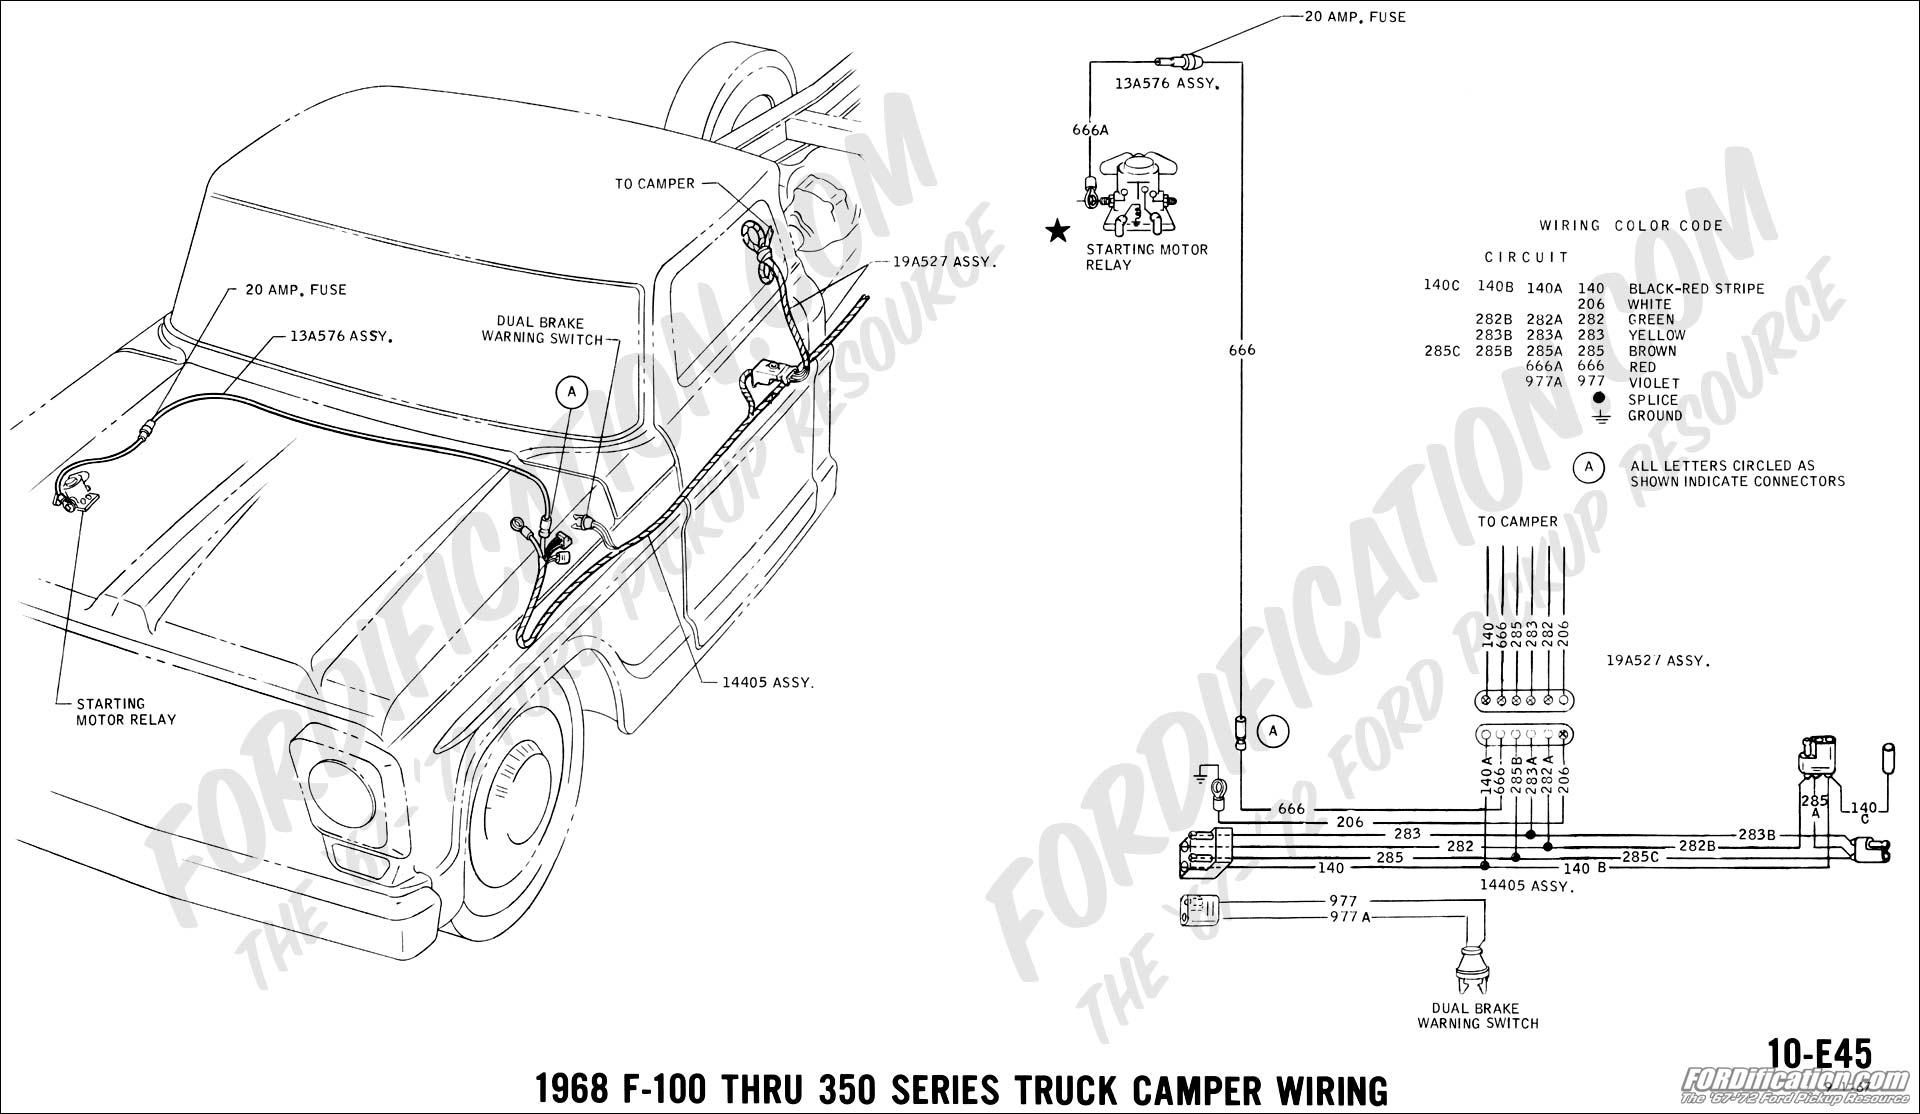 68 47 ford truck technical drawings and schematics section h wiring truck camper wiring diagram at gsmx.co